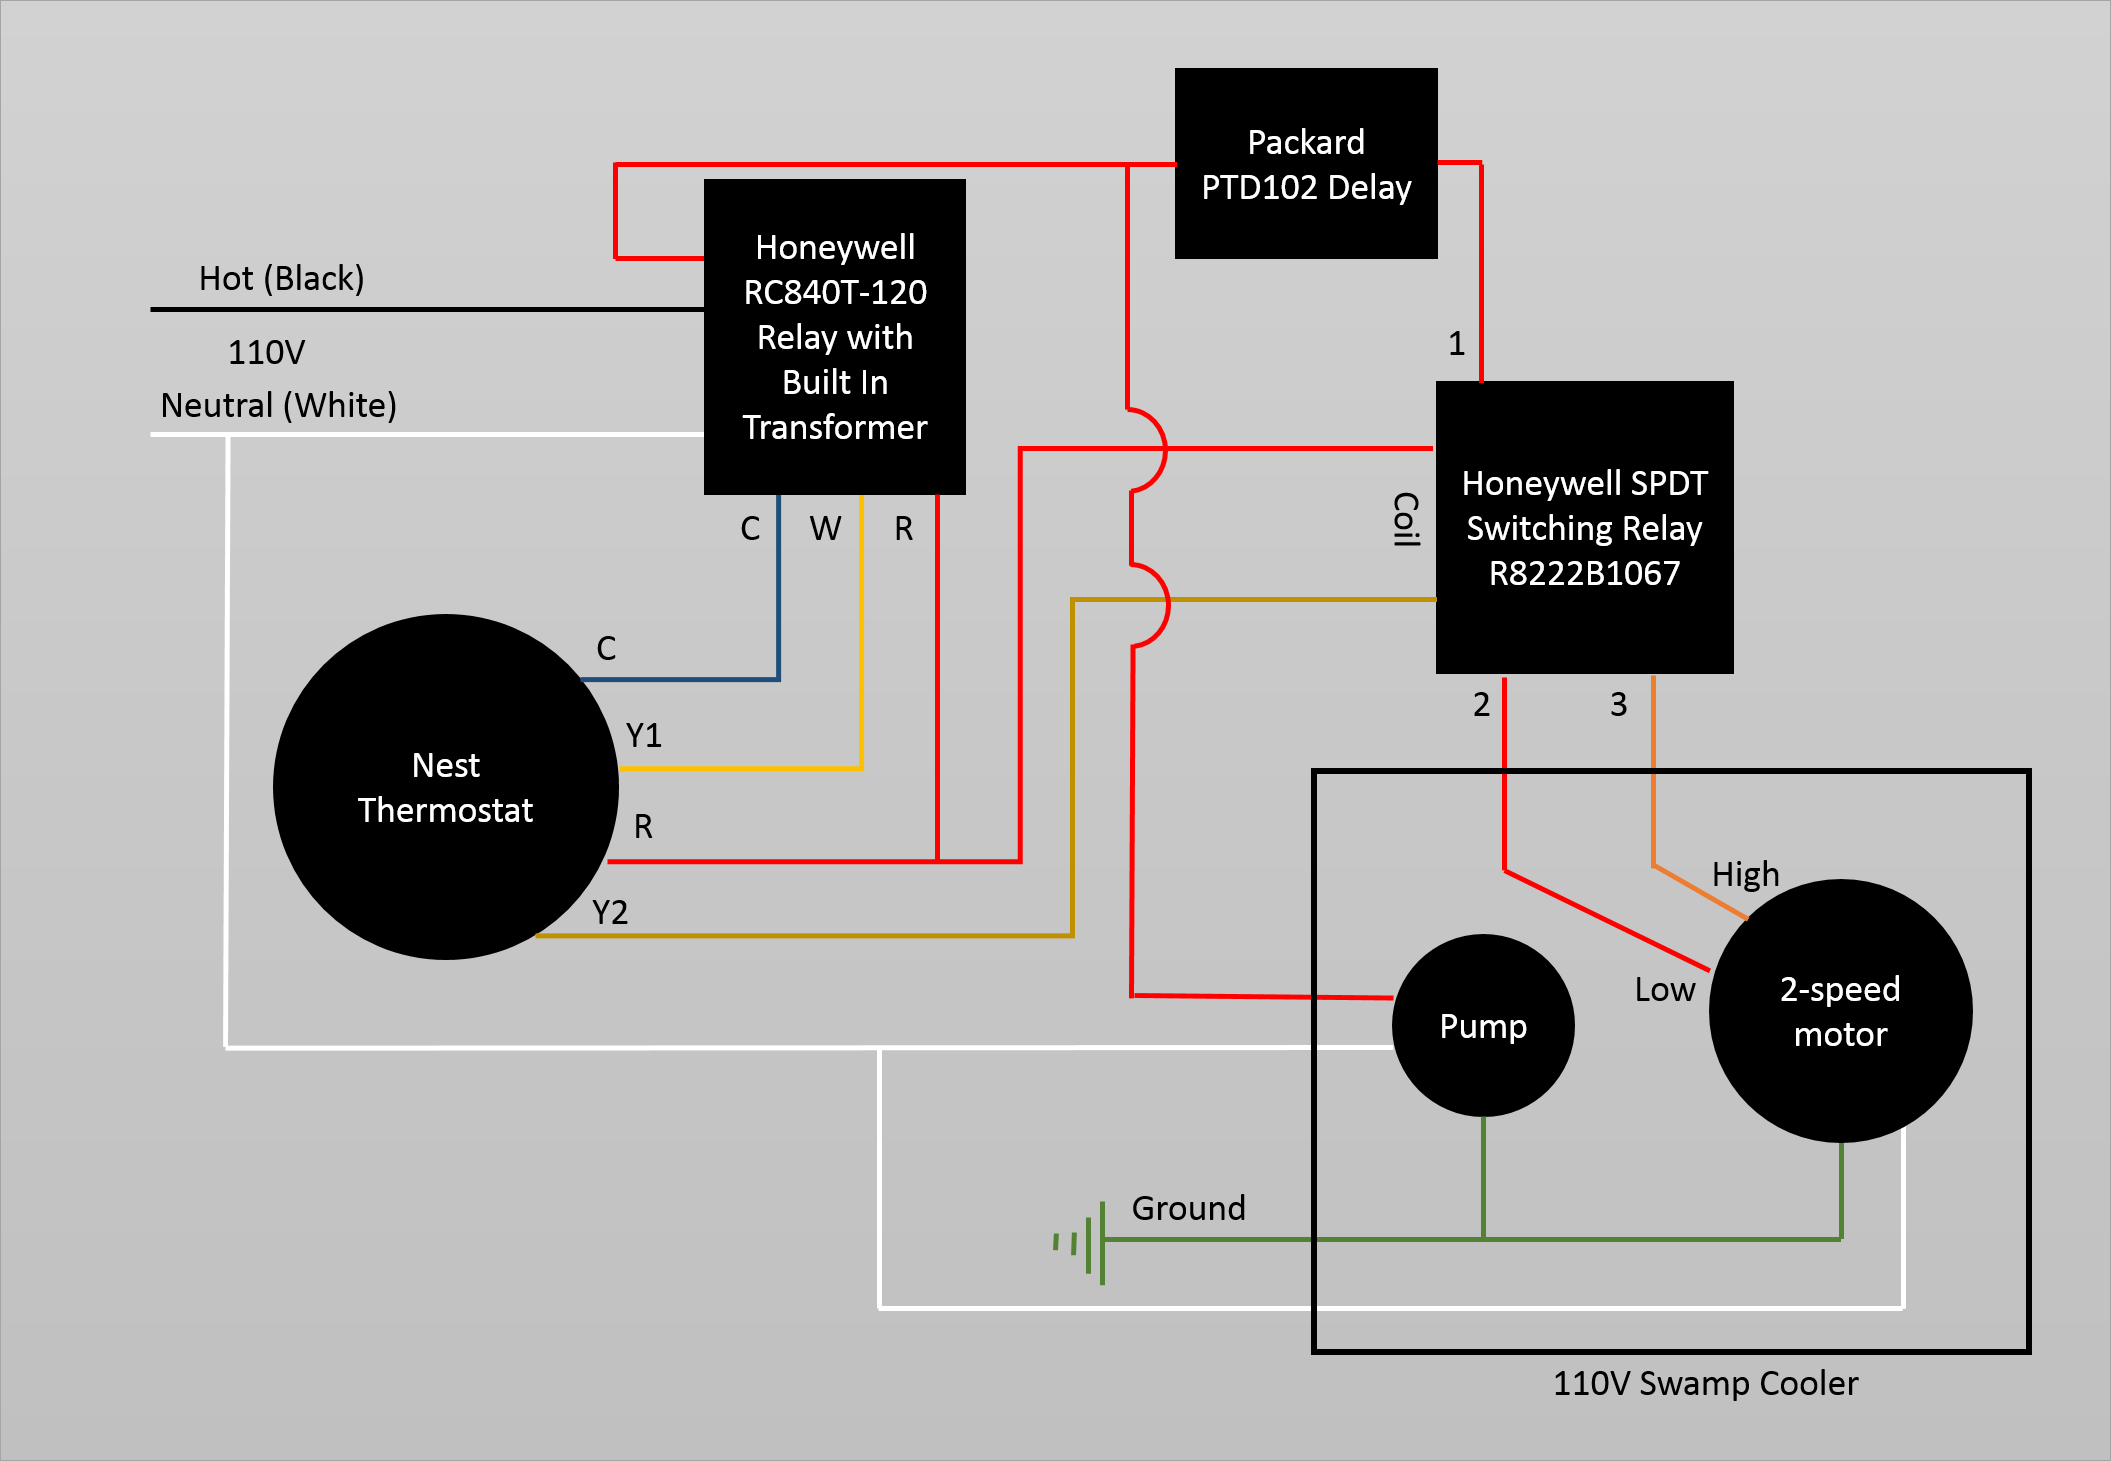 Wiring - Controlling 110V Swamp Cooler Using Nest Thermostat - Home - Nest 3Rd Generation Wiring Diagram Black Wire